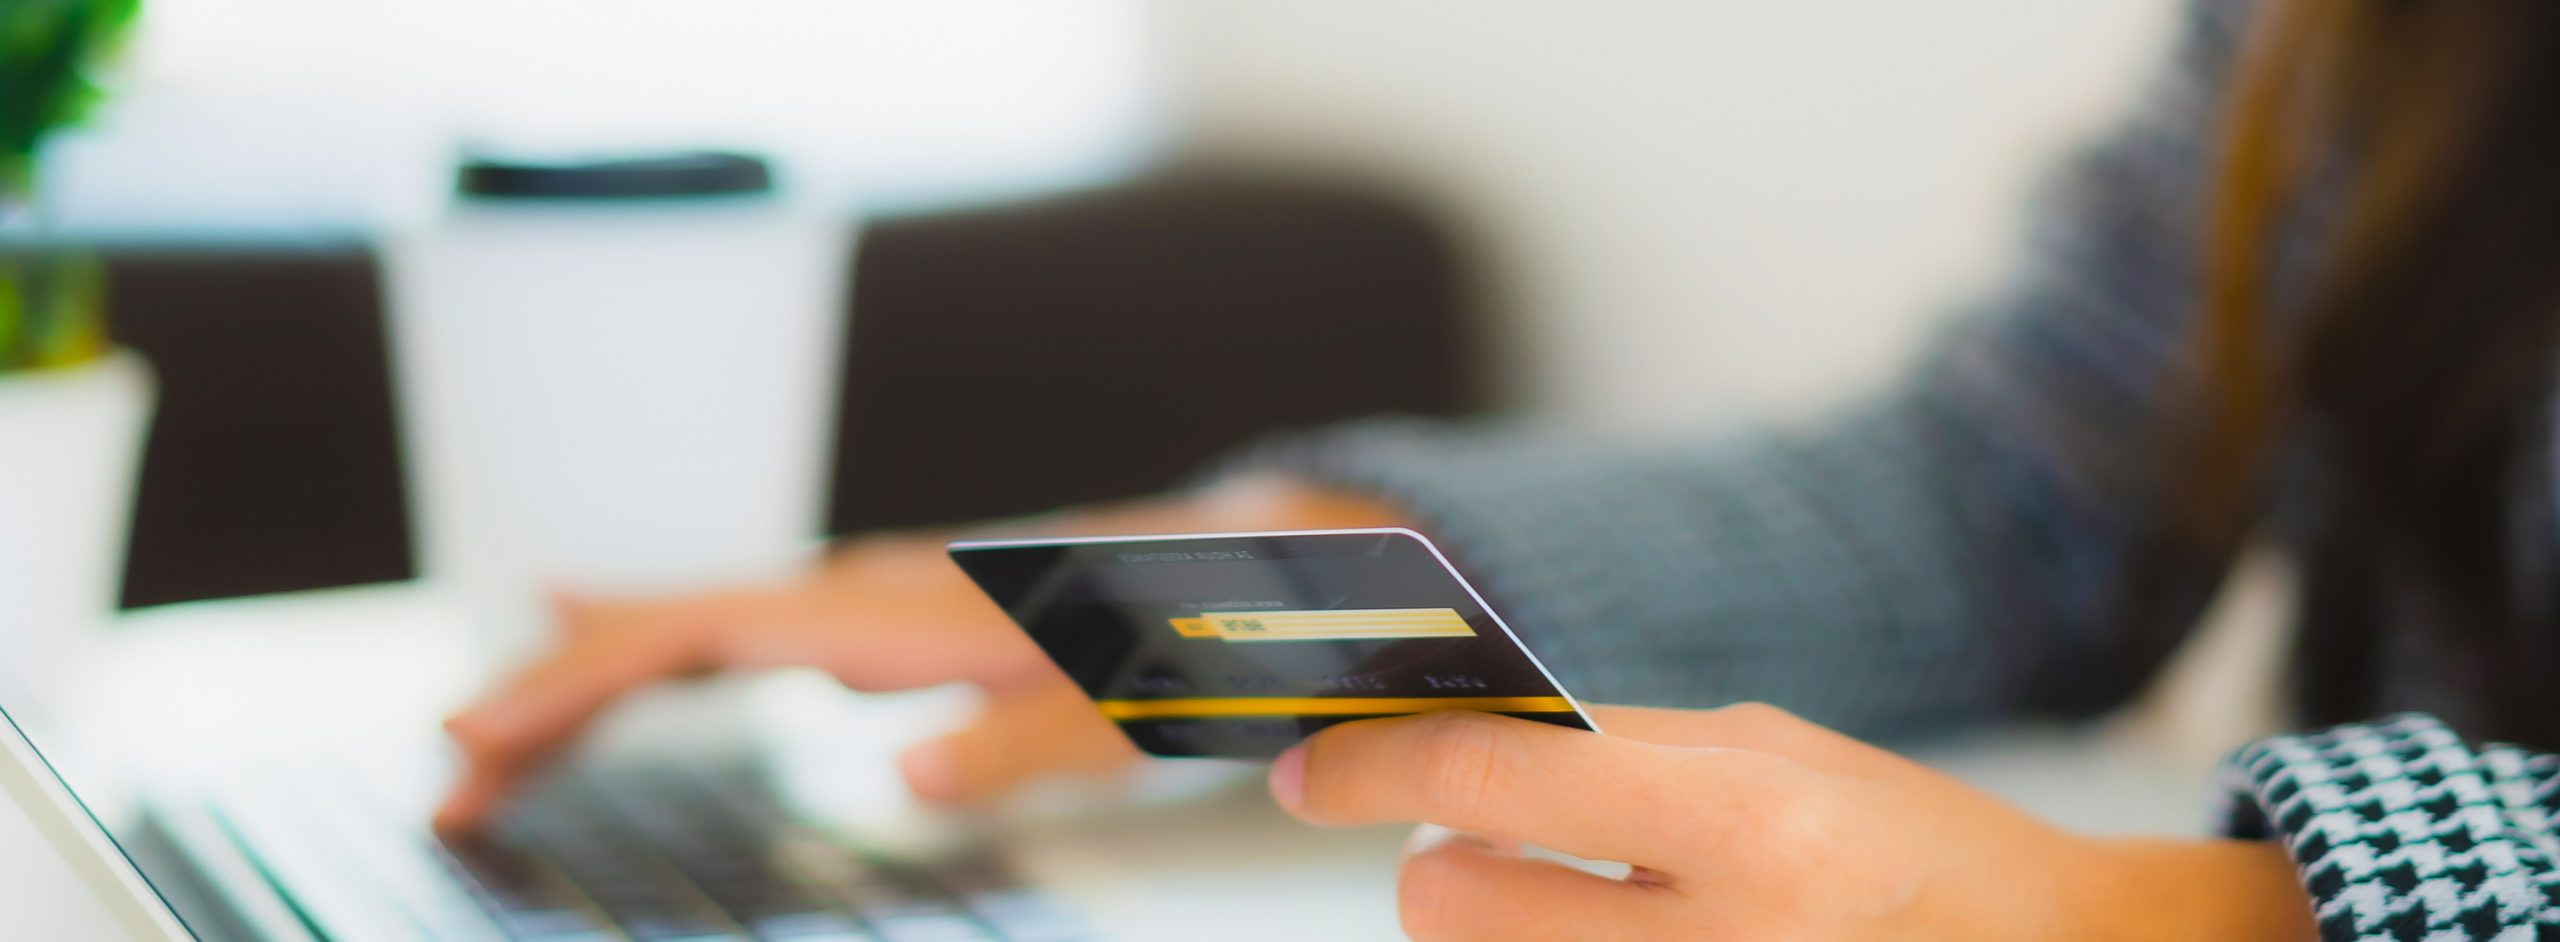 Why Banks and Credit Unions should look beyond existing core banking platforms